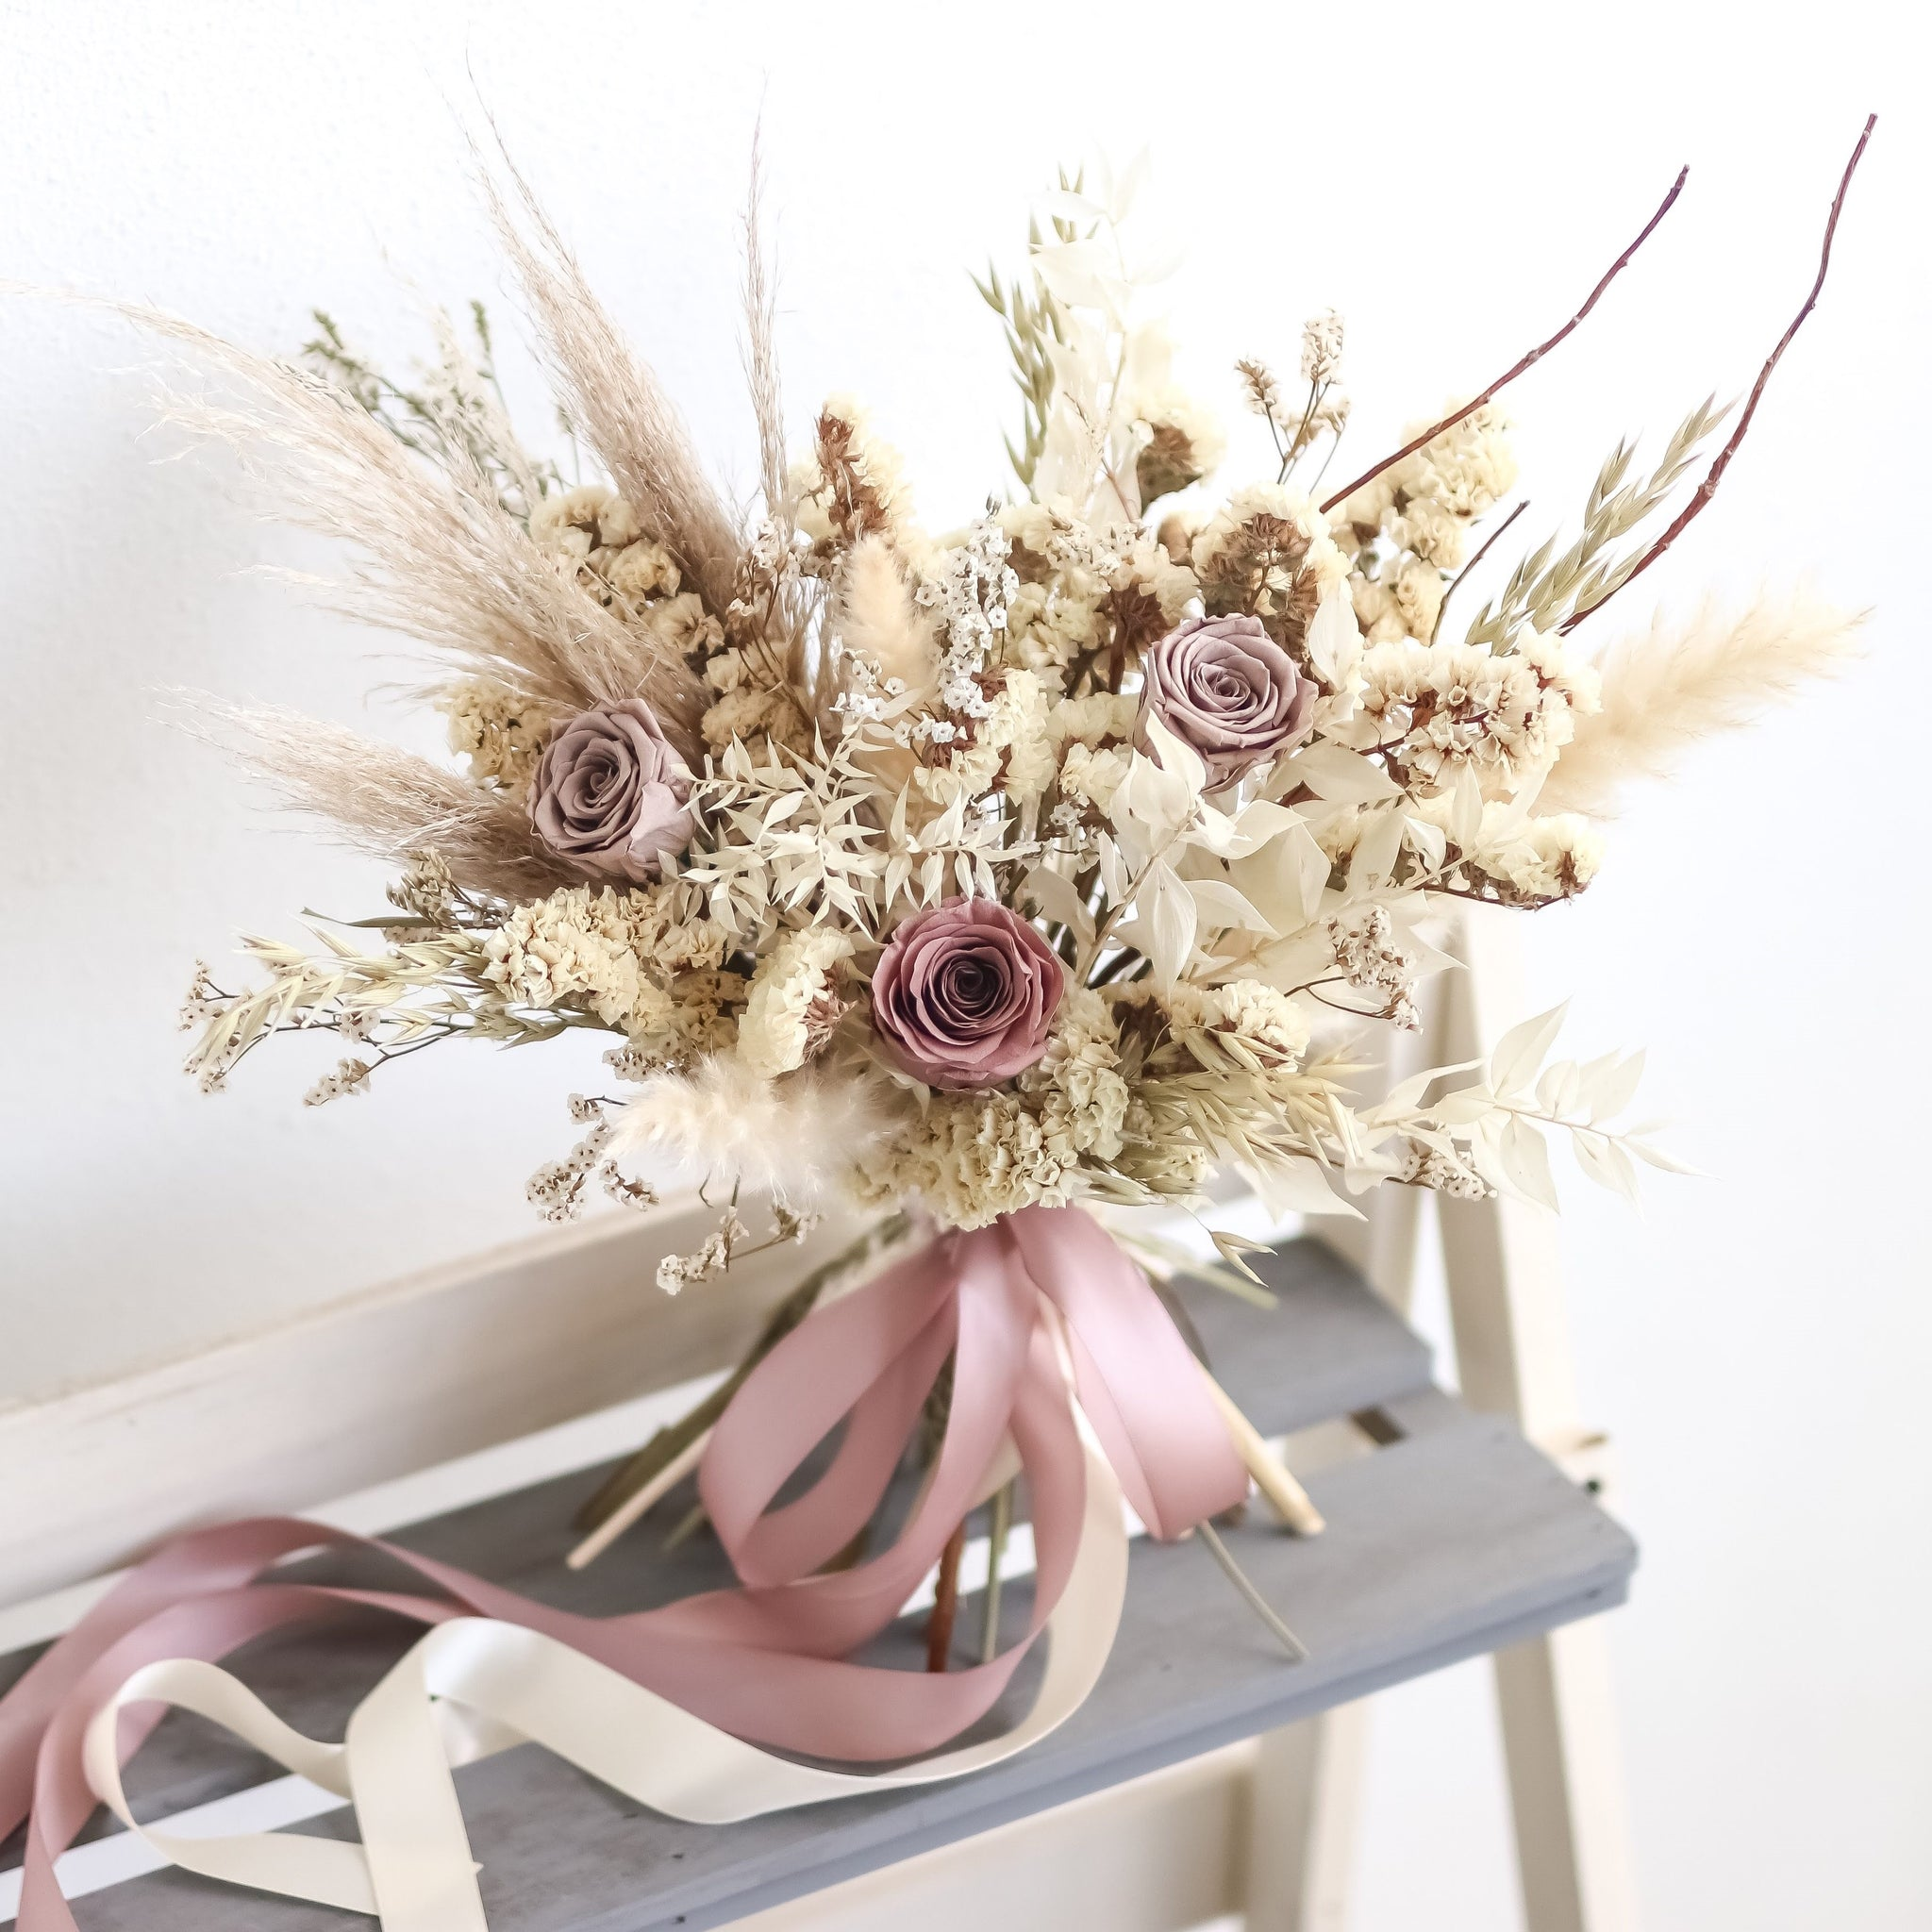 Bridal bouquet (dried), Weddings - Kesed creates